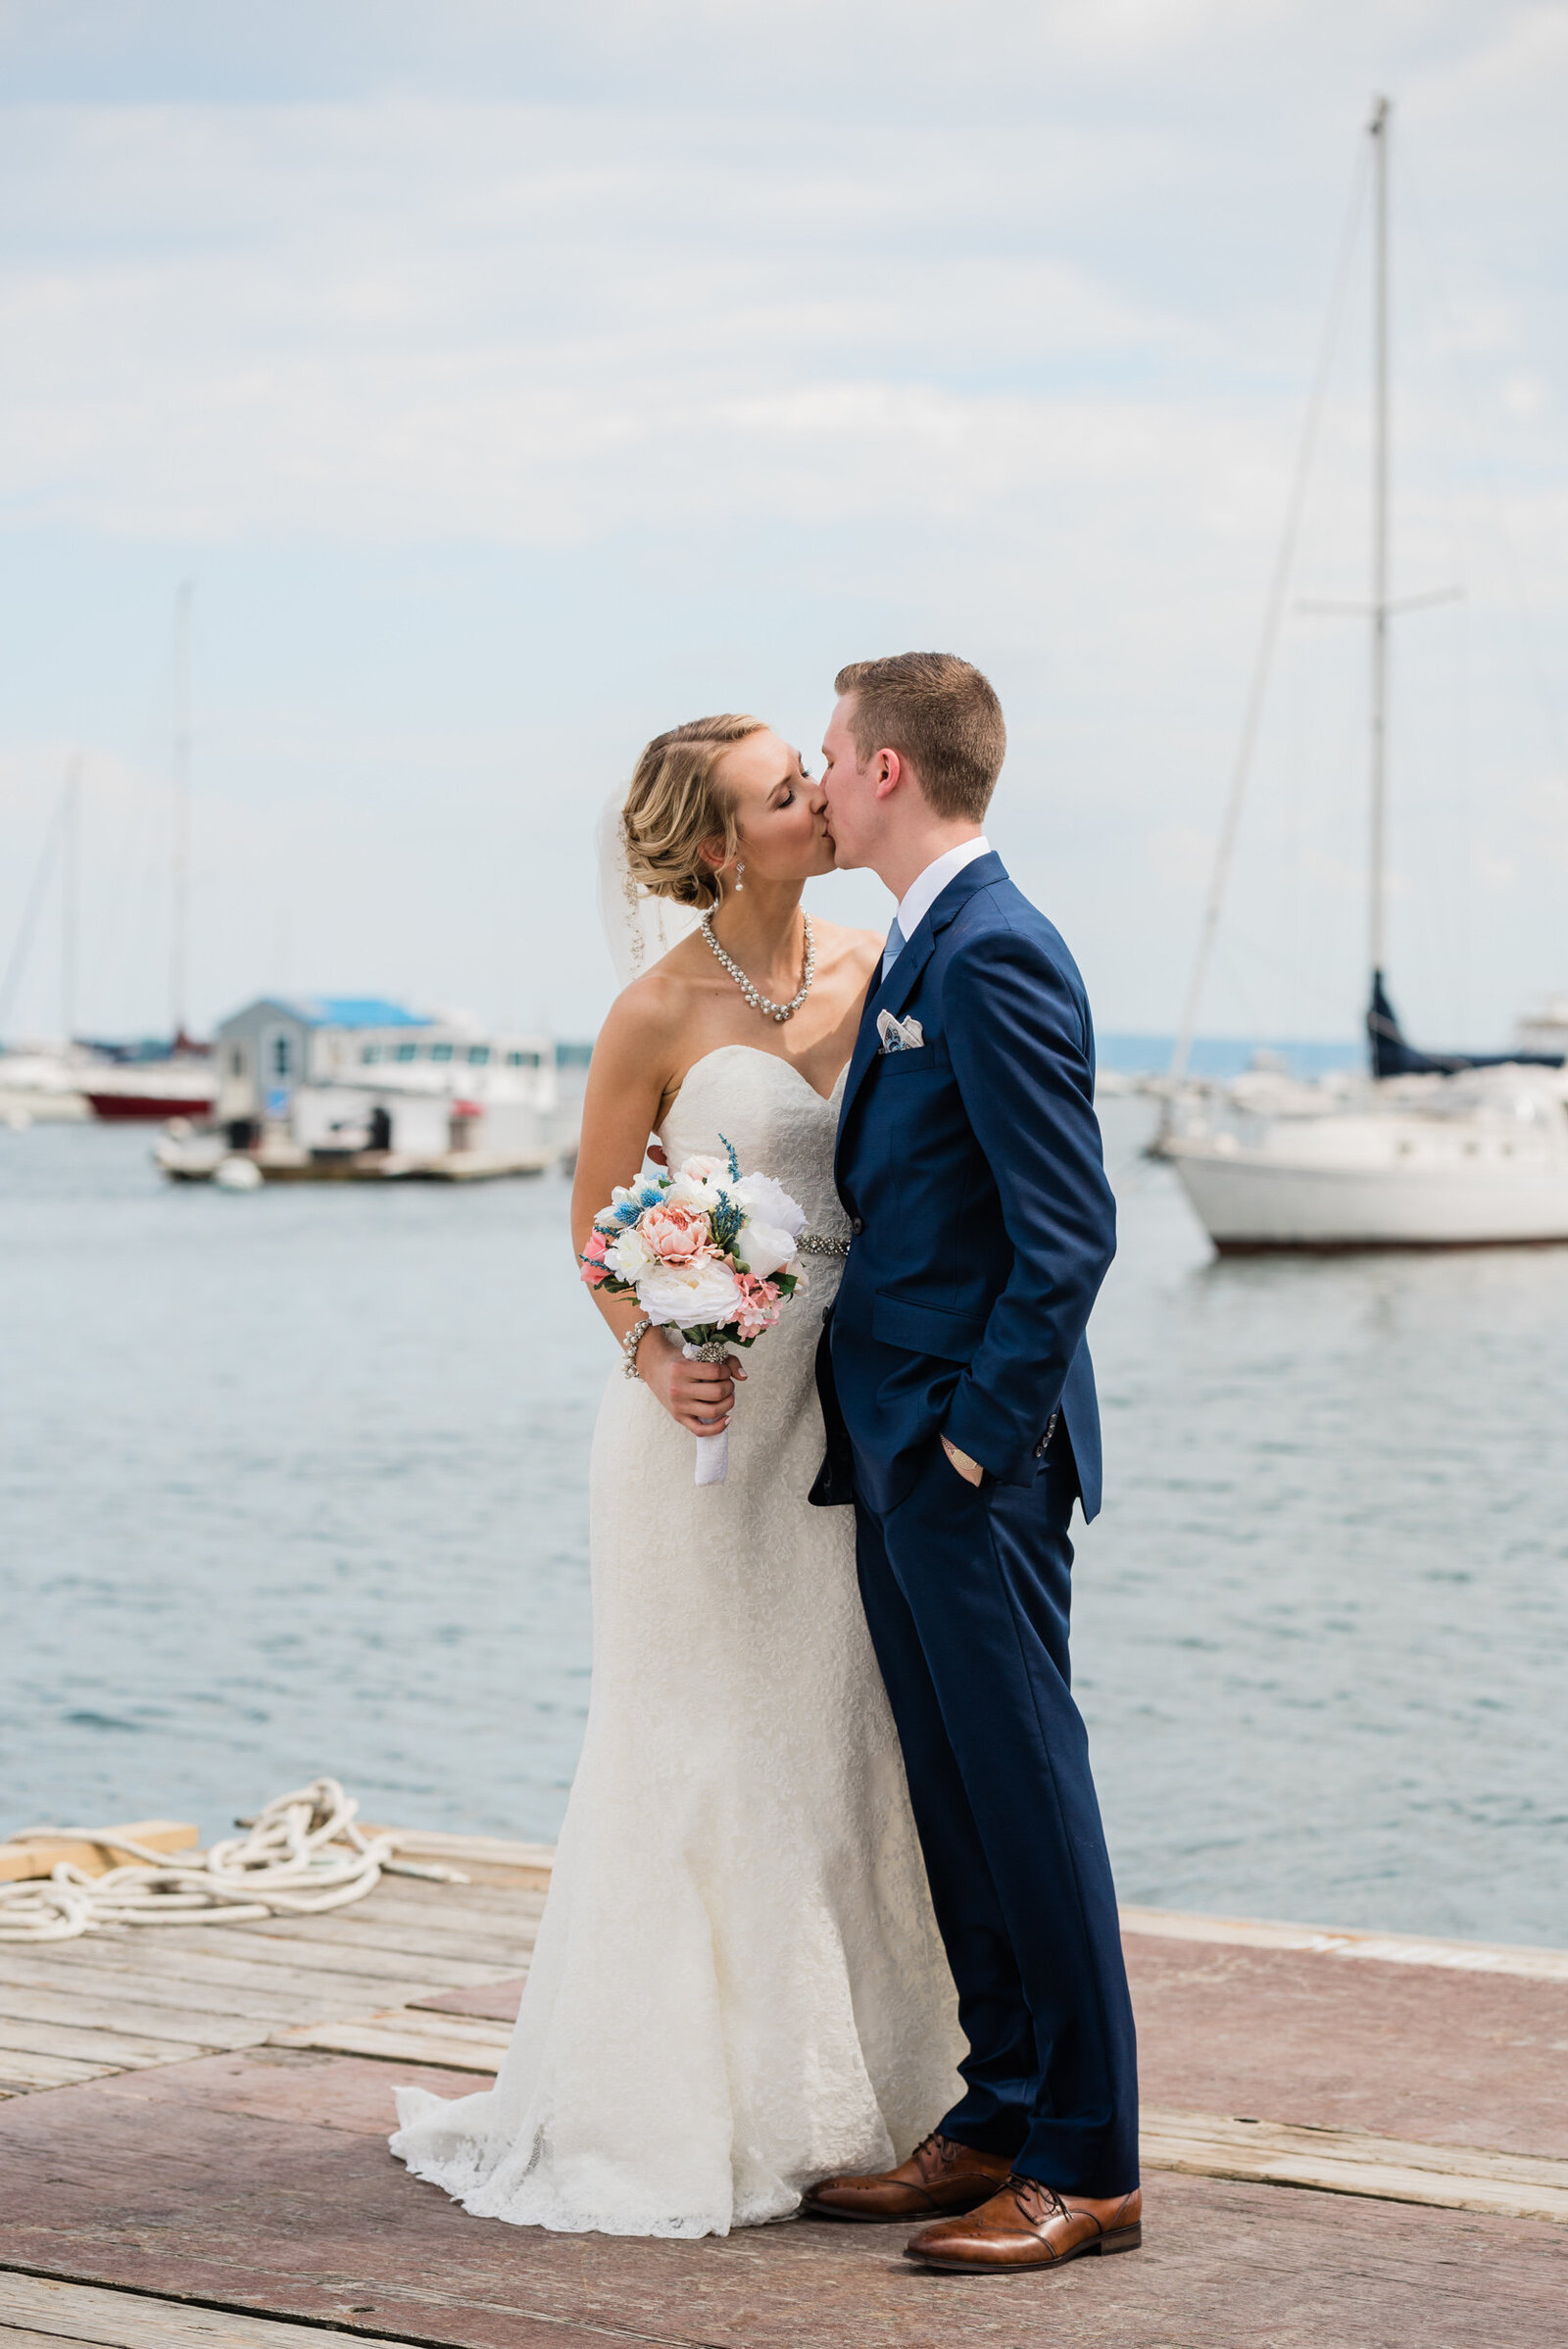 wedding couple shares a kiss during their portraits on the dock at the Duxbury Bay Maritime School